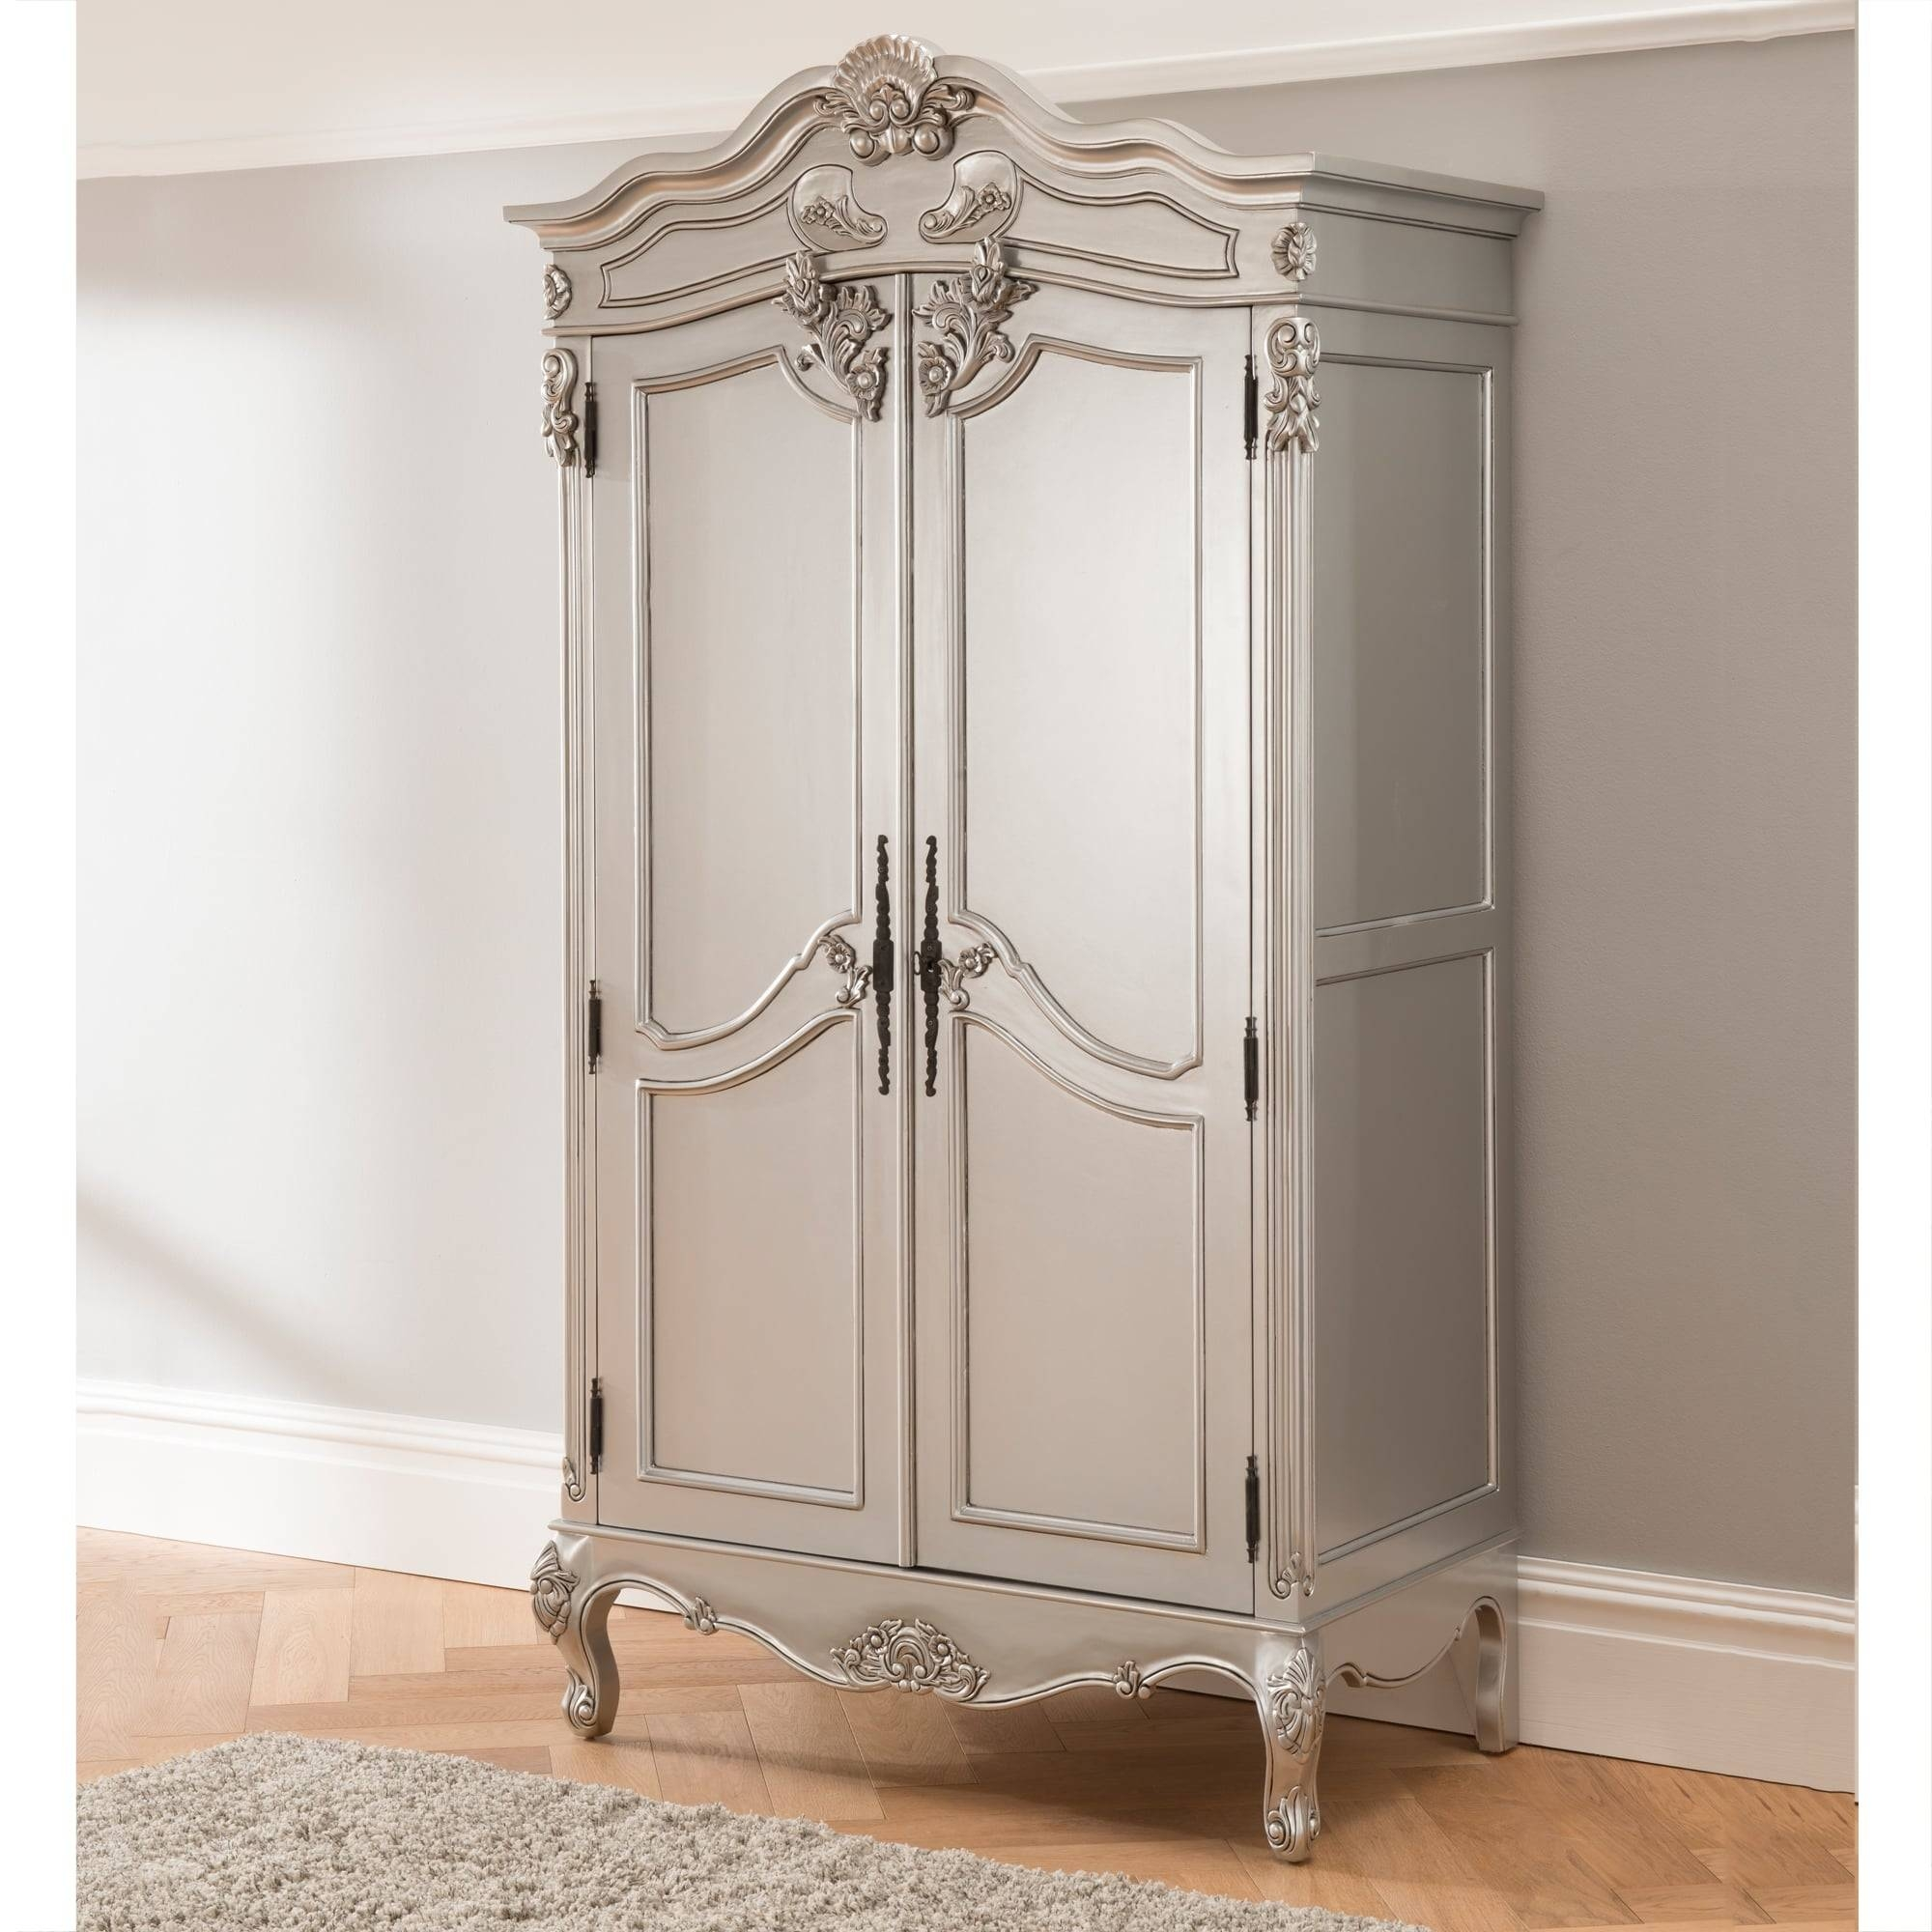 Baroque Antique French Wardrobe Works Exceptional Alongside Our throughout Shabby Chic White Wardrobes (Image 2 of 15)